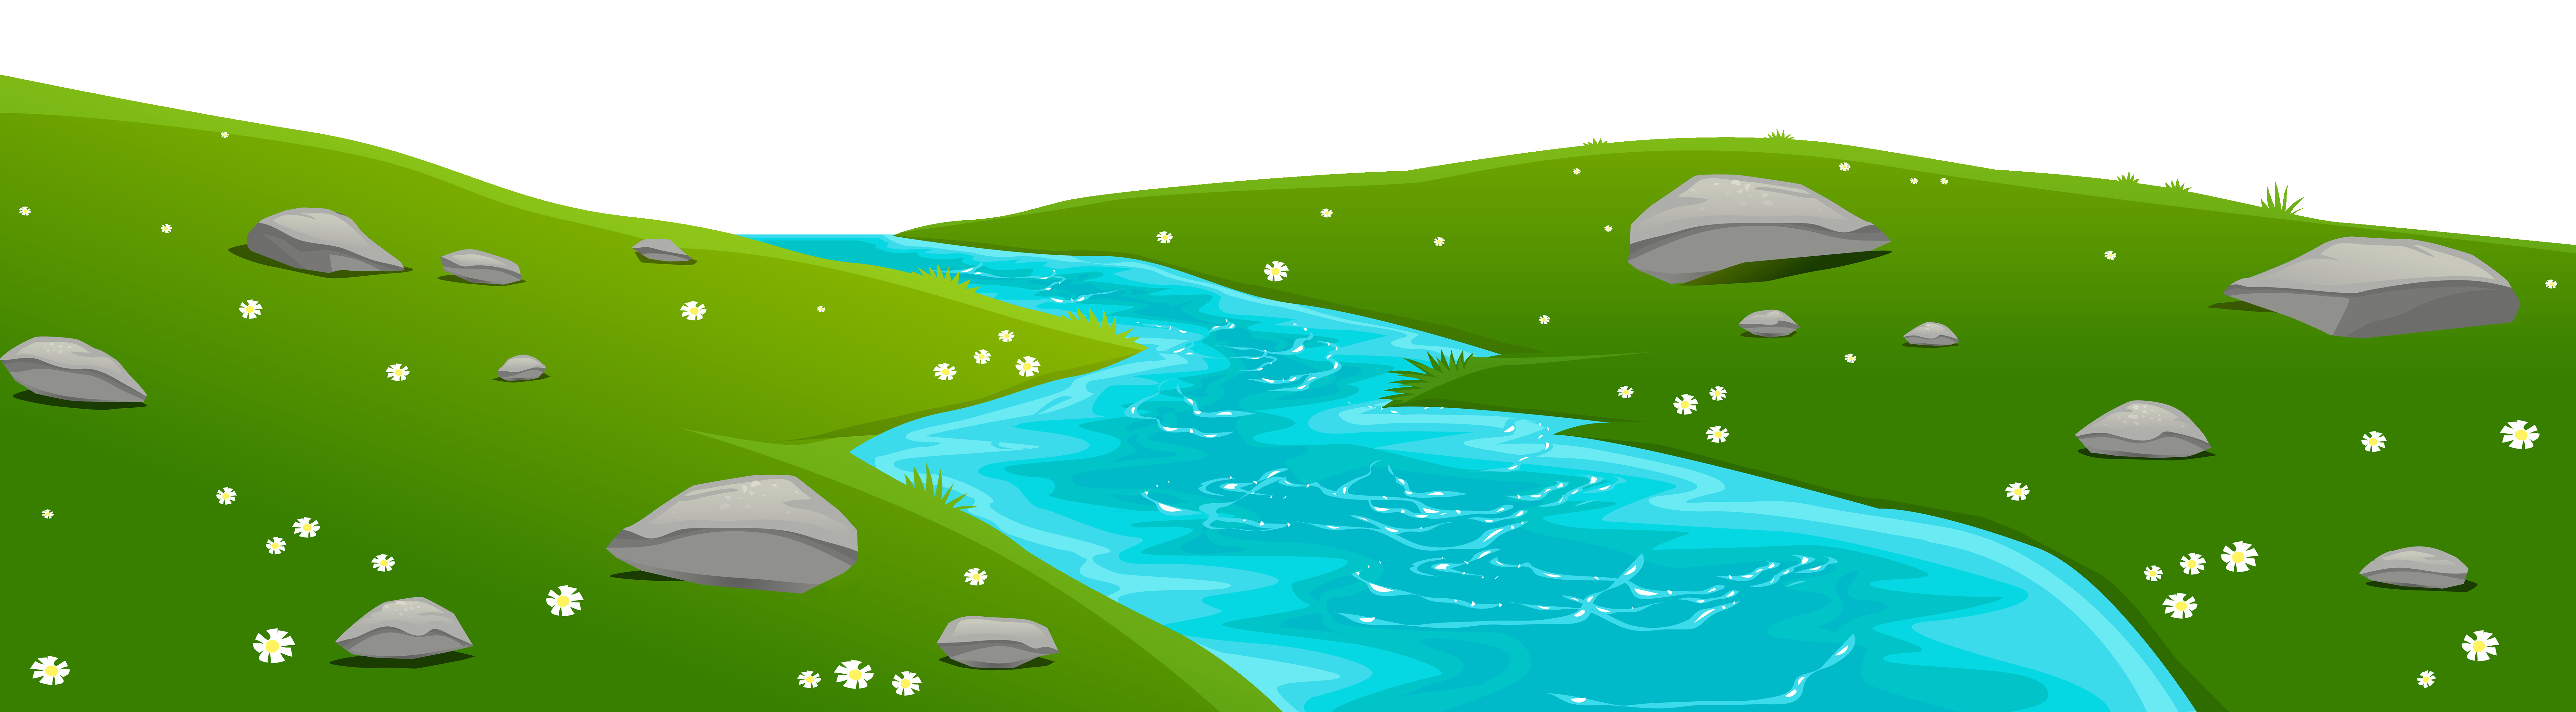 Ground clipart transparent. River cover png clip